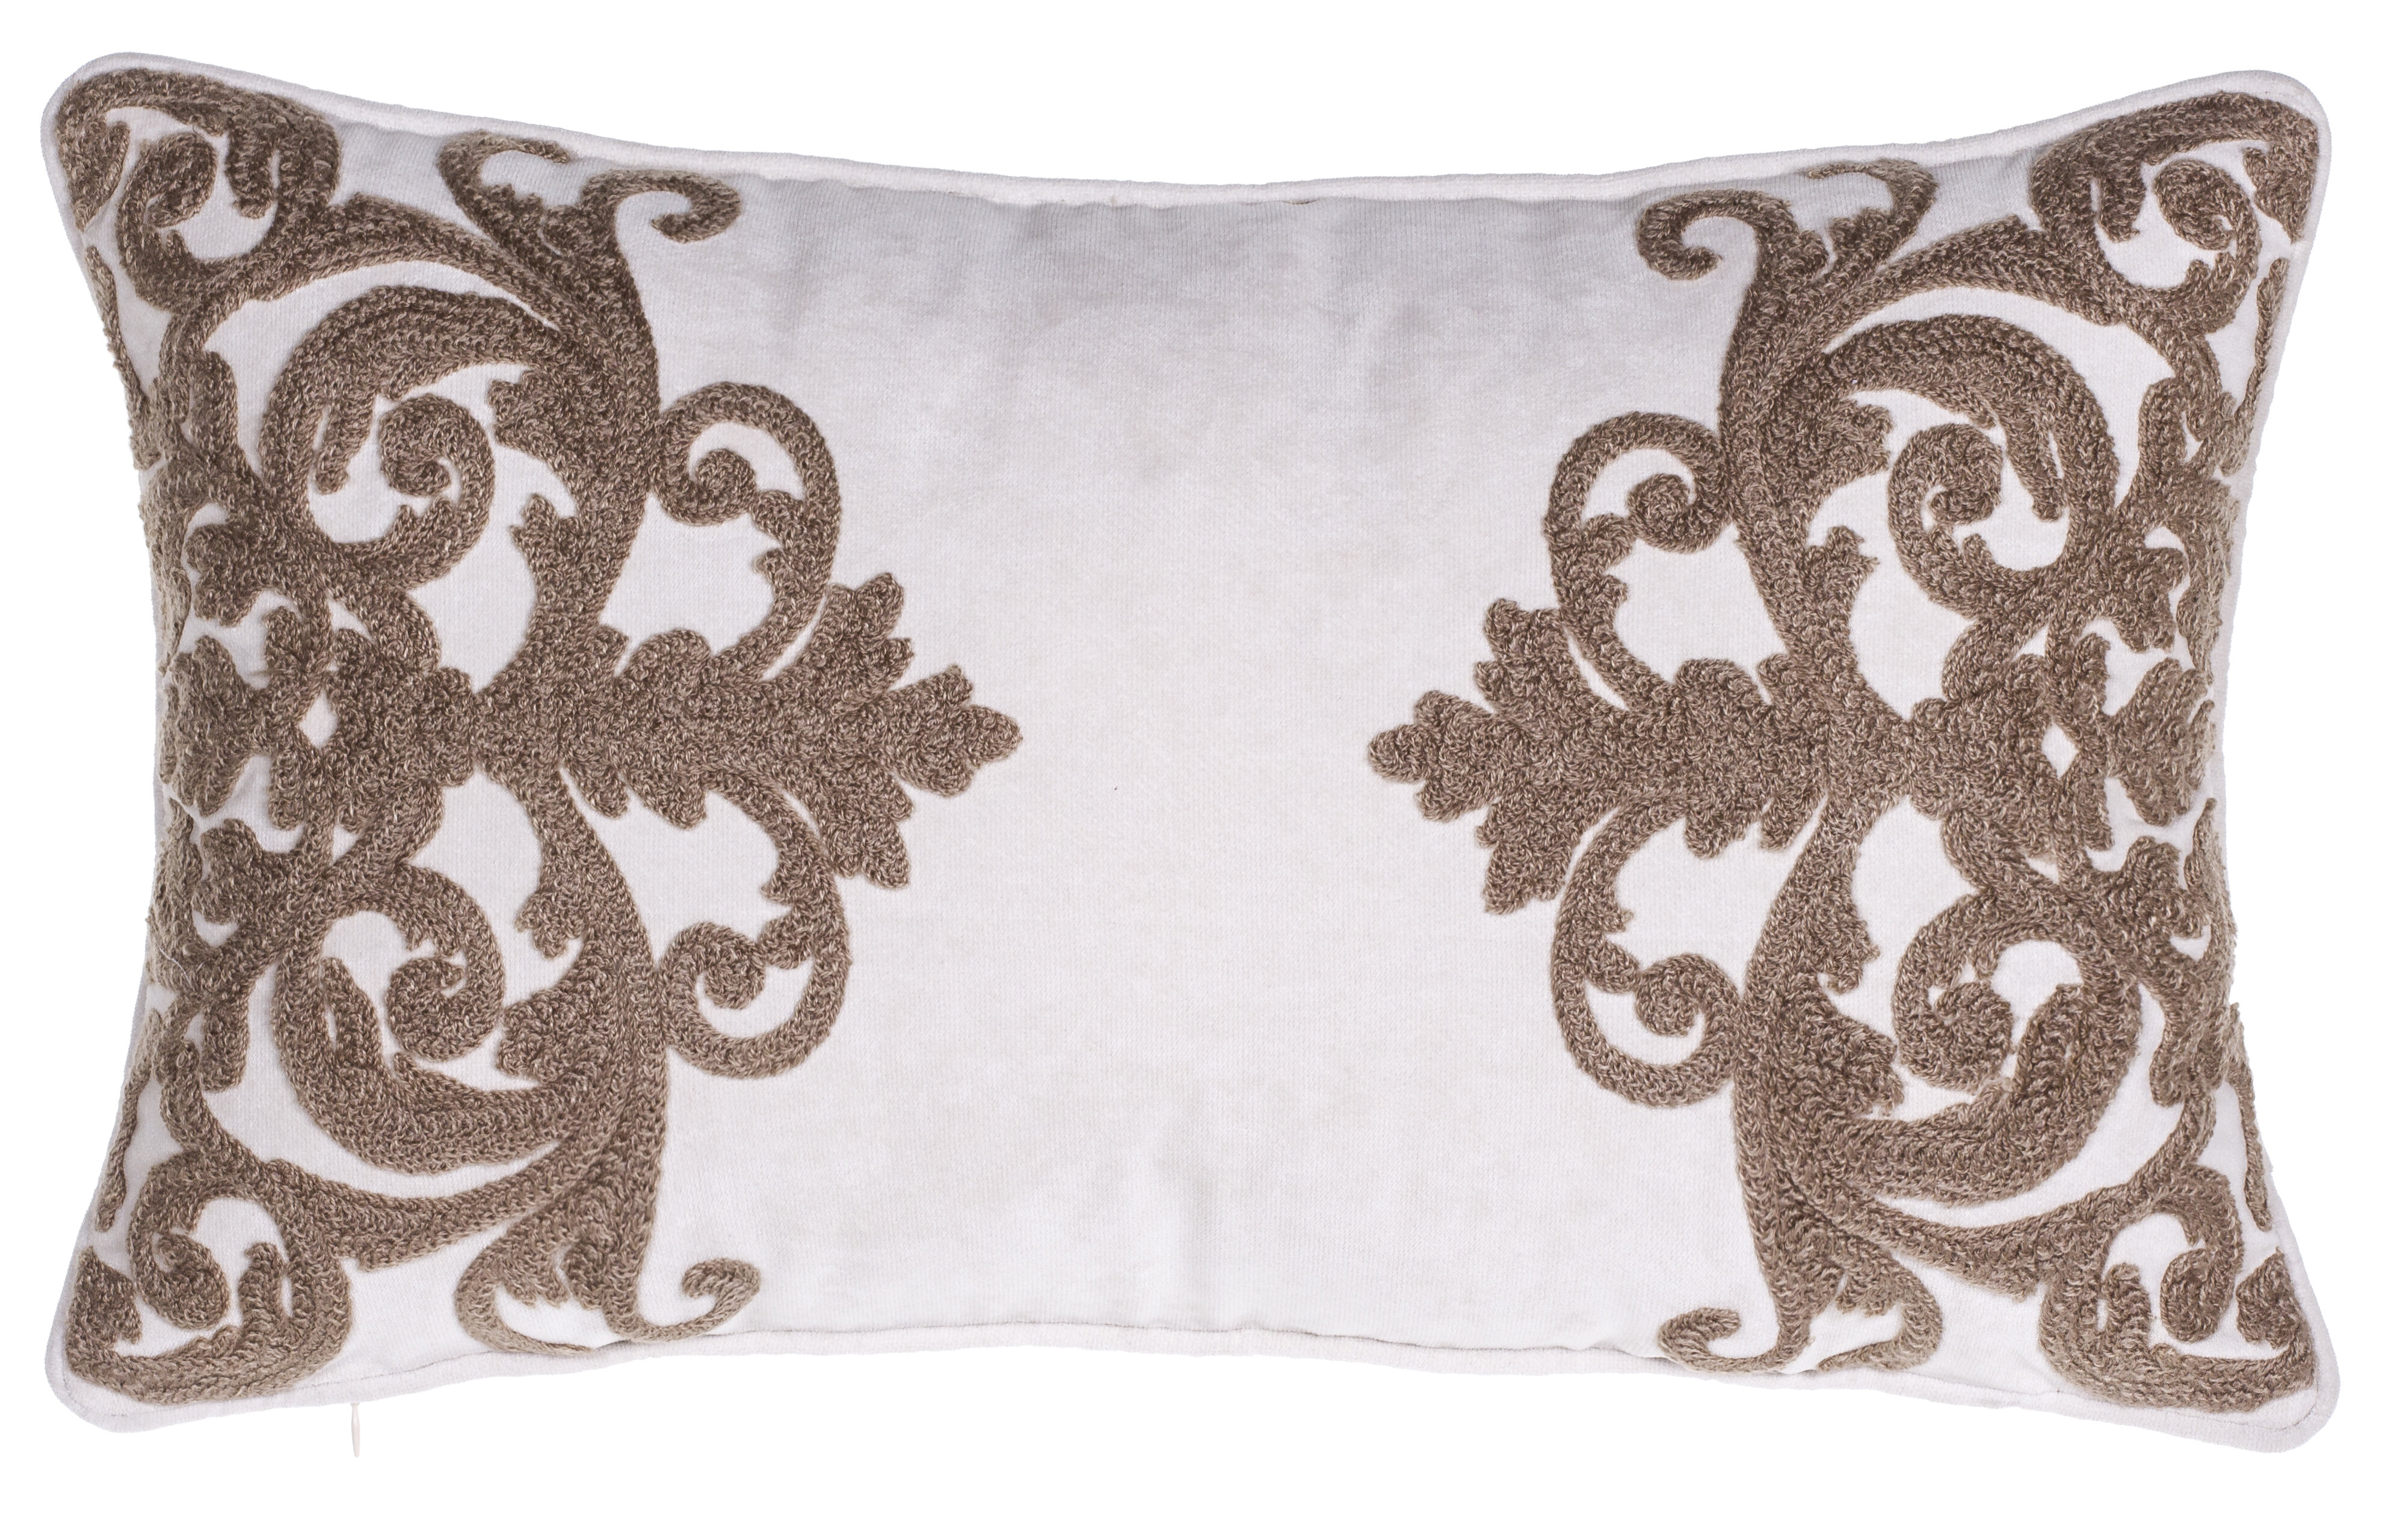 14 Karat Home Inc Versailles Crewel Stitch Lumbar Pillow Reviews Wayfair